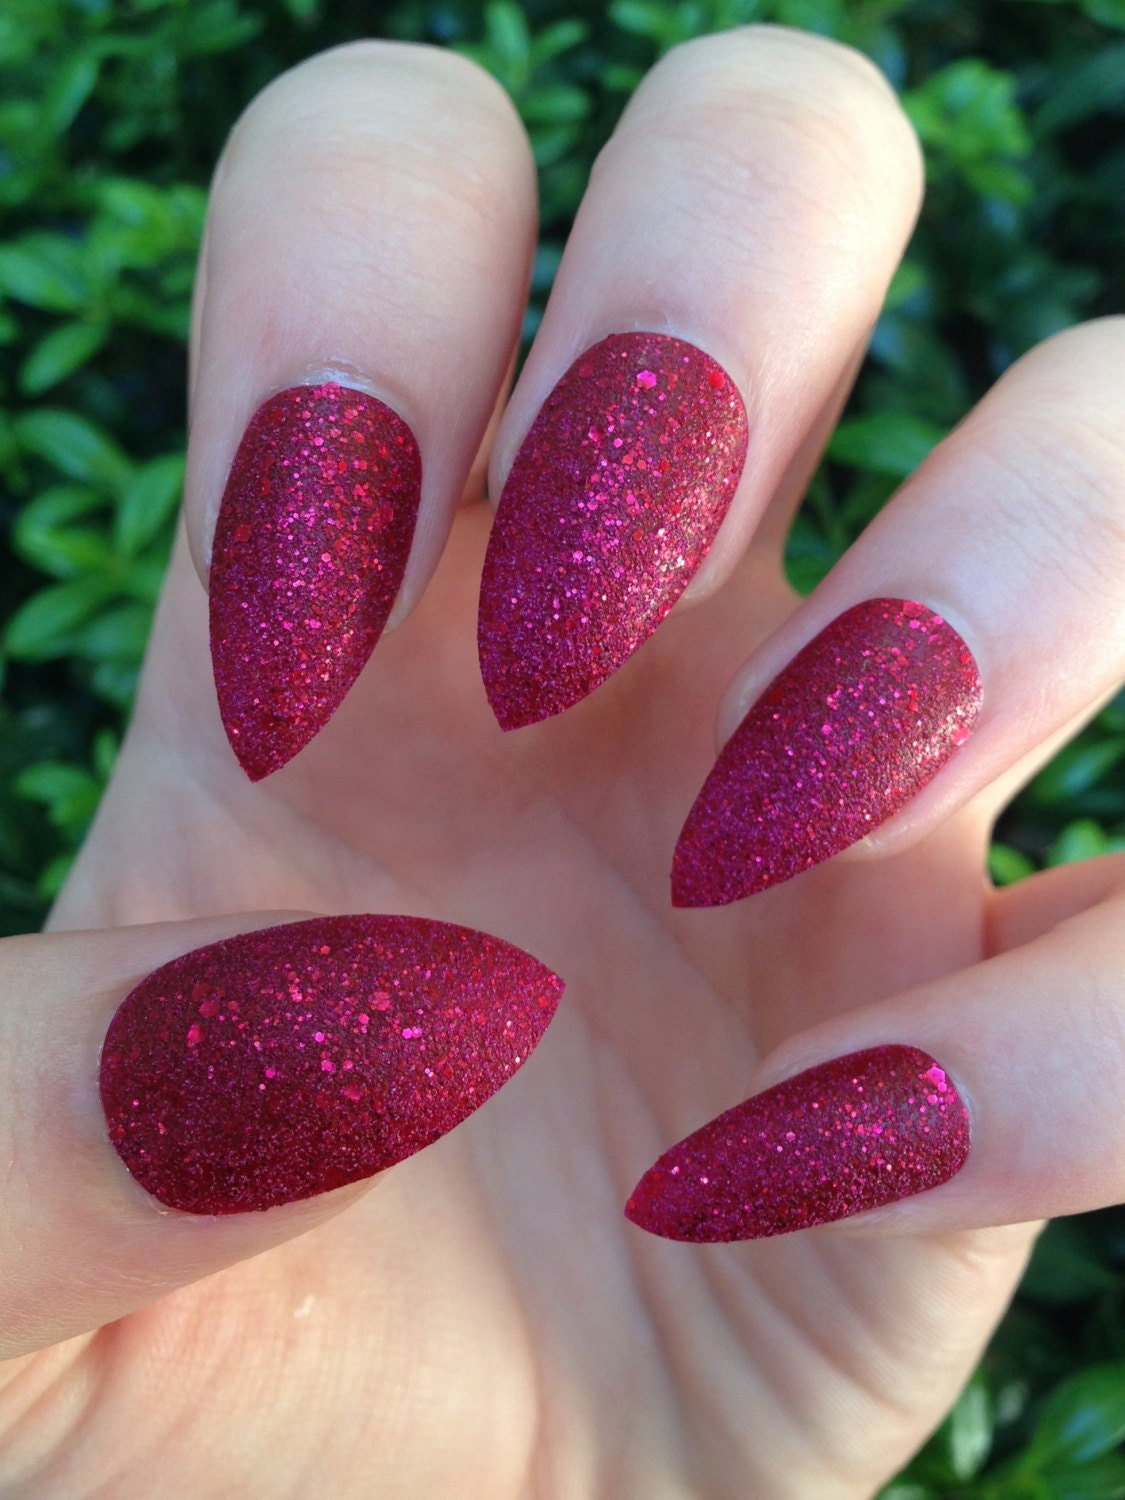 fake nails, stiletto nails, red nails, red glitter, press on nails ...